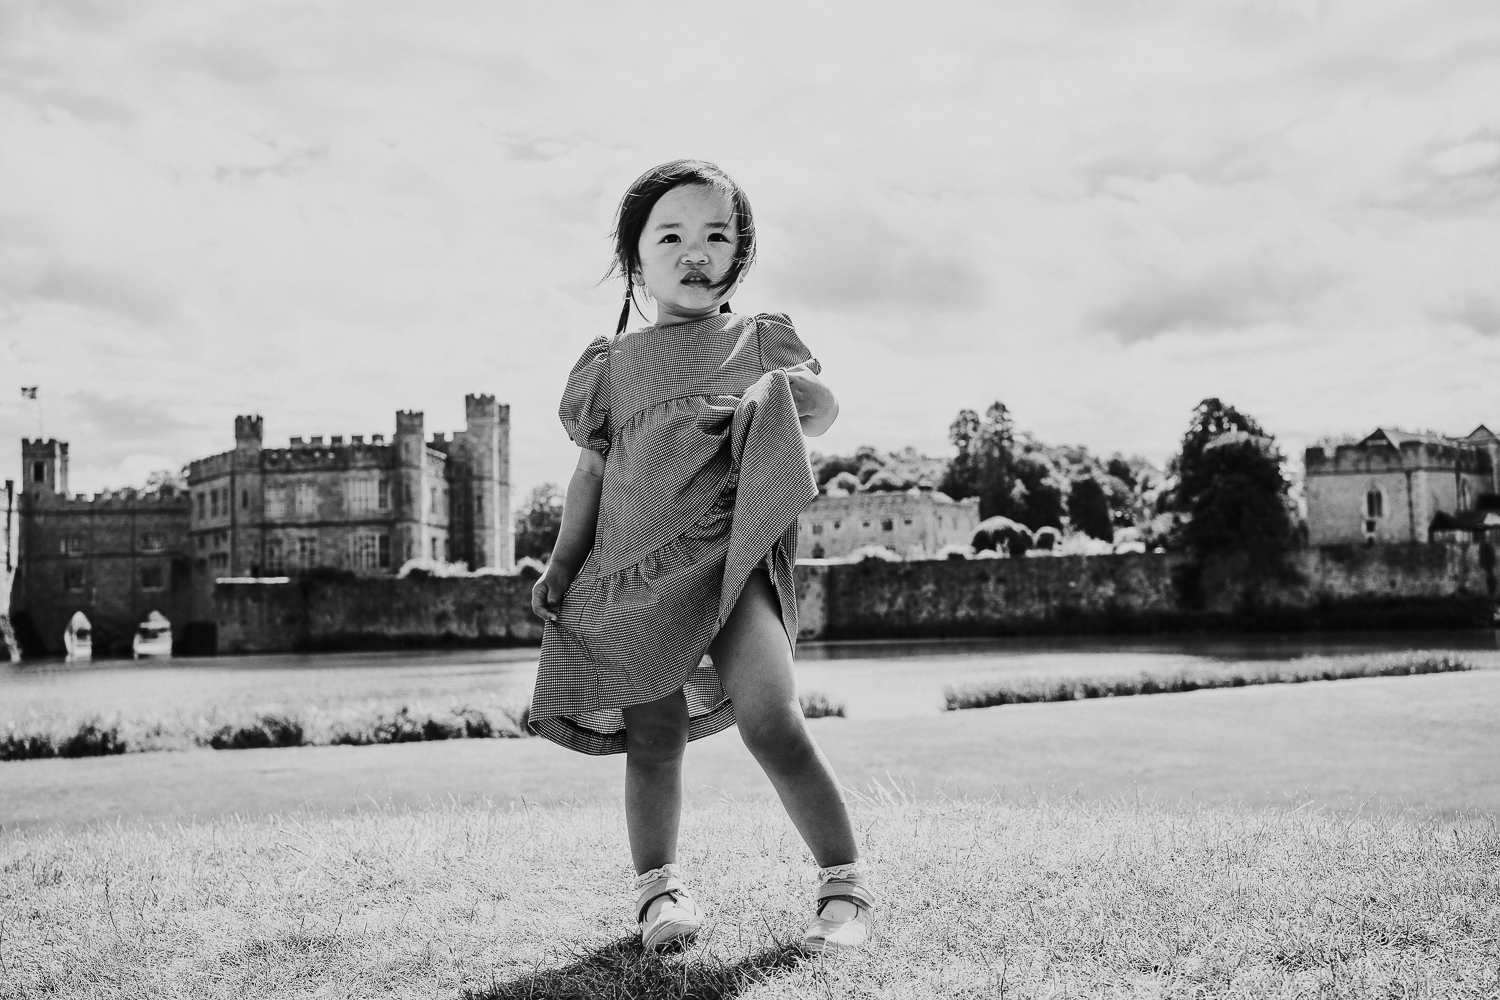 sibling family photography 2020 black and white portrait young girl at Leeds Castle